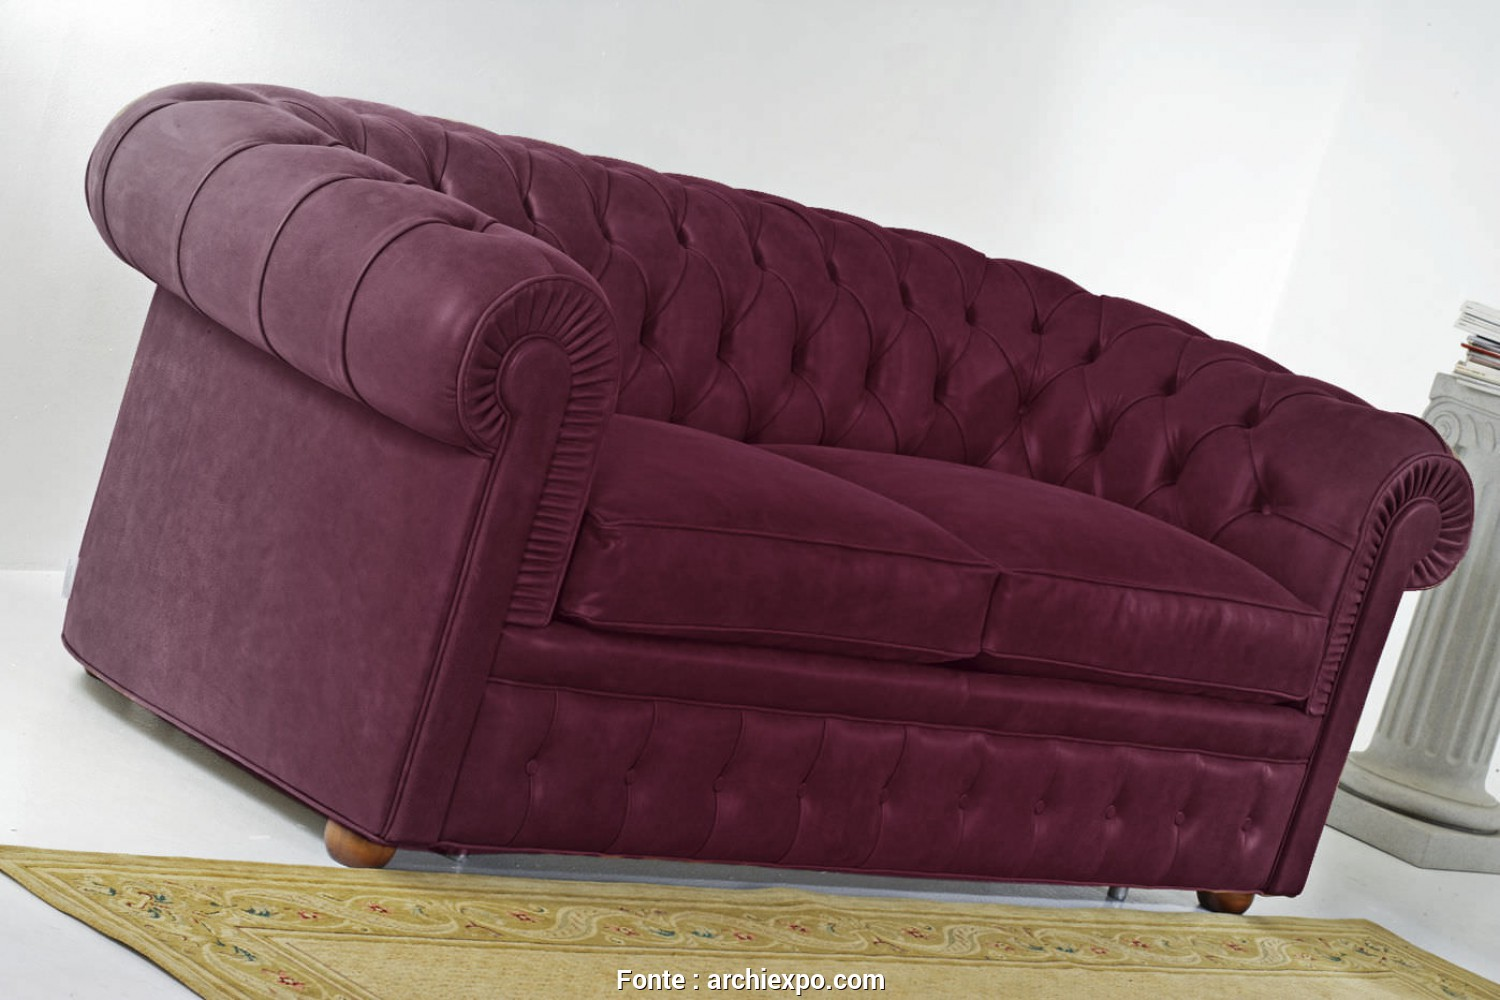 Divani Santambrogio Lissone, Grande Sofa, / Chesterfield / Leather / 2-Person CHESTER CLASSIC Divani Santambrogio